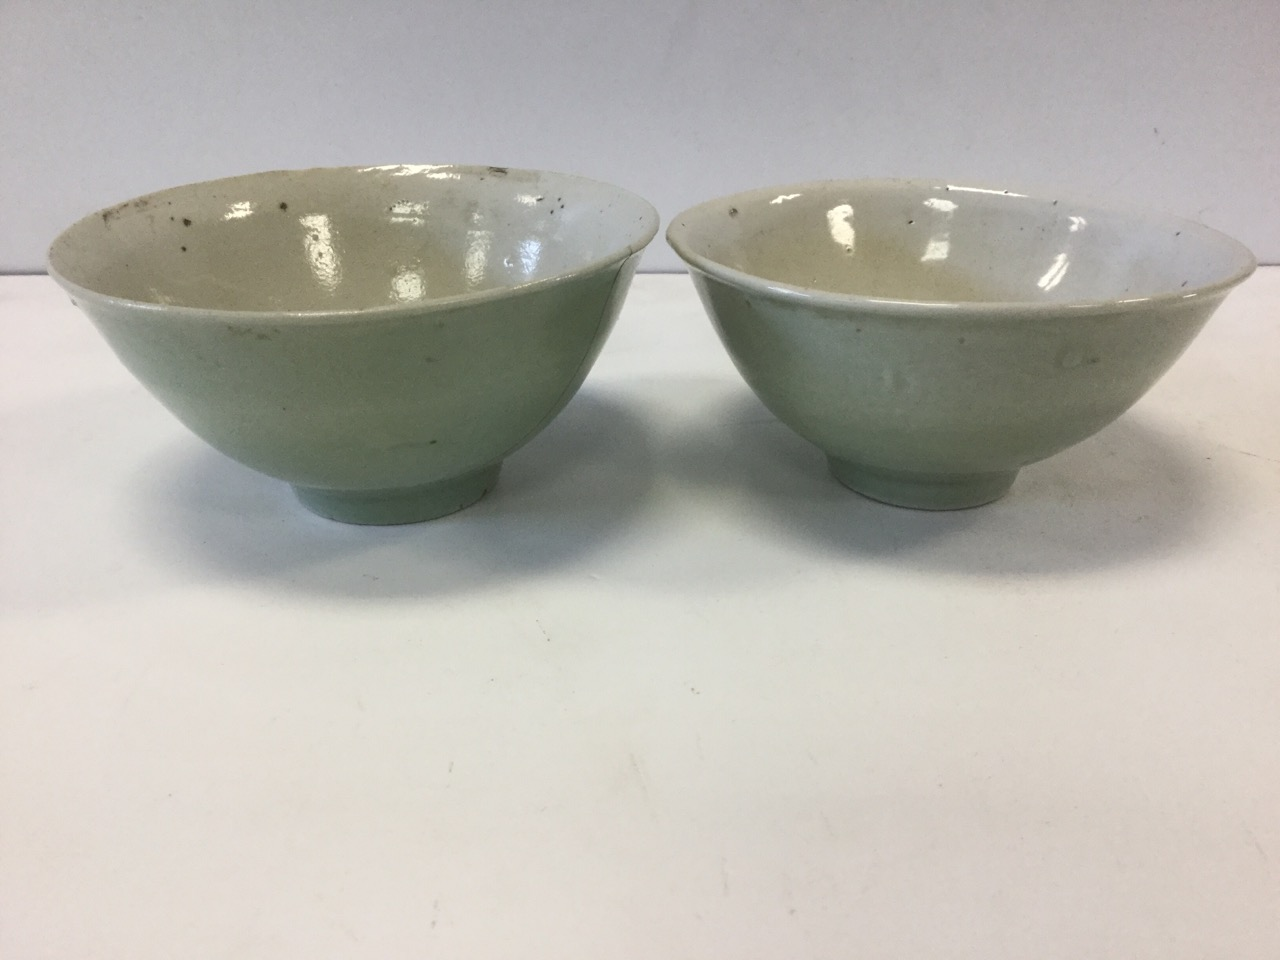 Lot 23 - A pair of early Chinese celadon glazed bowls, raised on tubular bases, unmarked and one